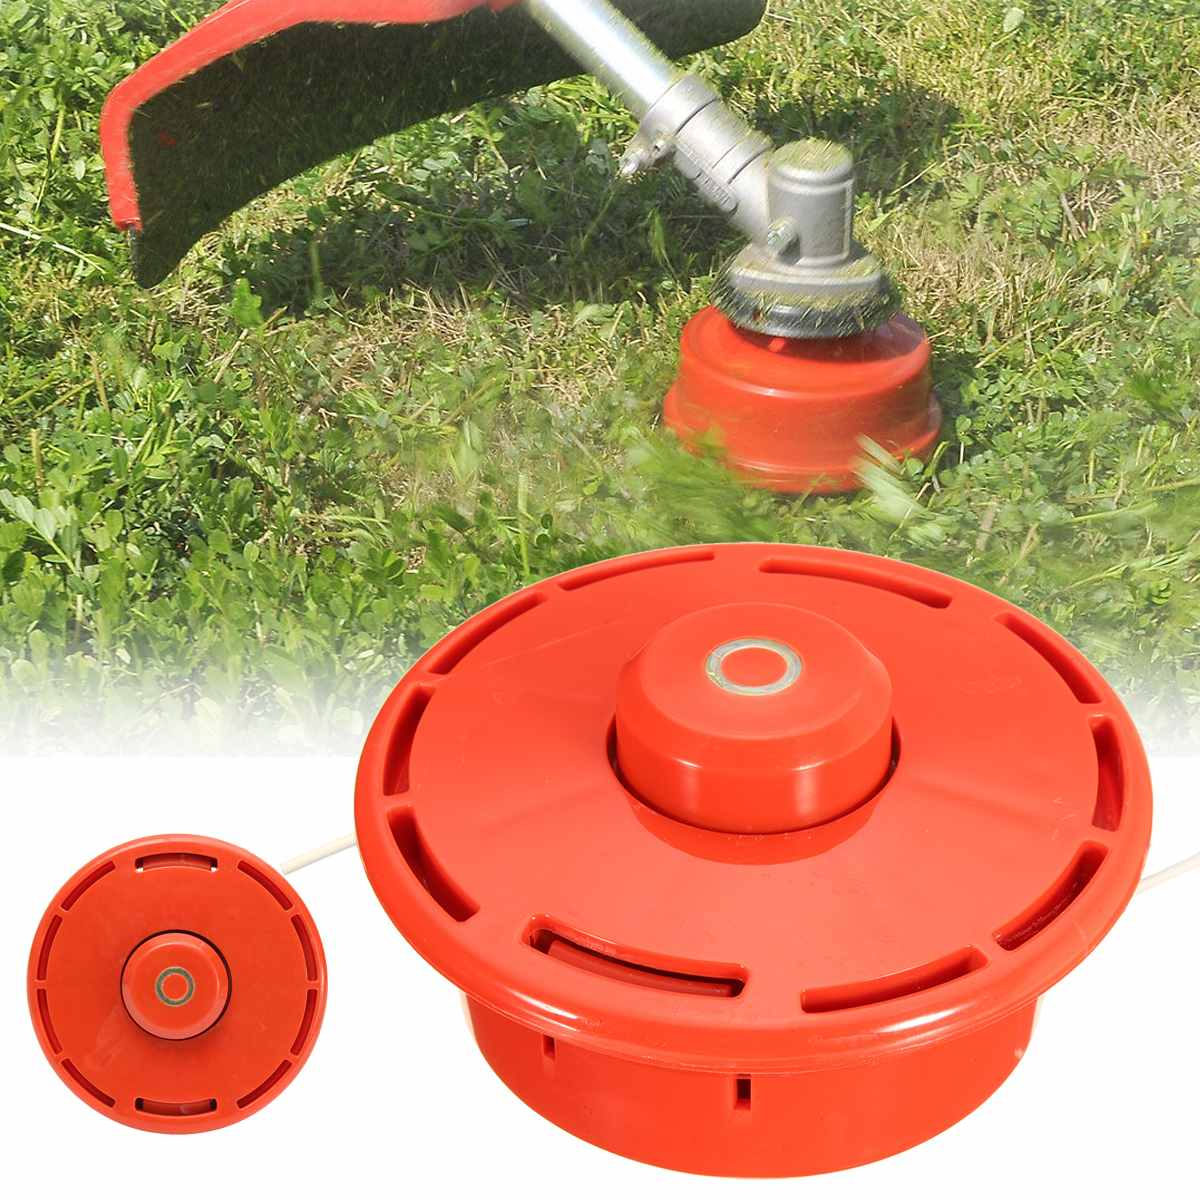 Universal Strimmer Bump Feed Line Spool Brush Cutter Grass Replacement Trimmer Head Hardened Plastic Grass Trimmer Head